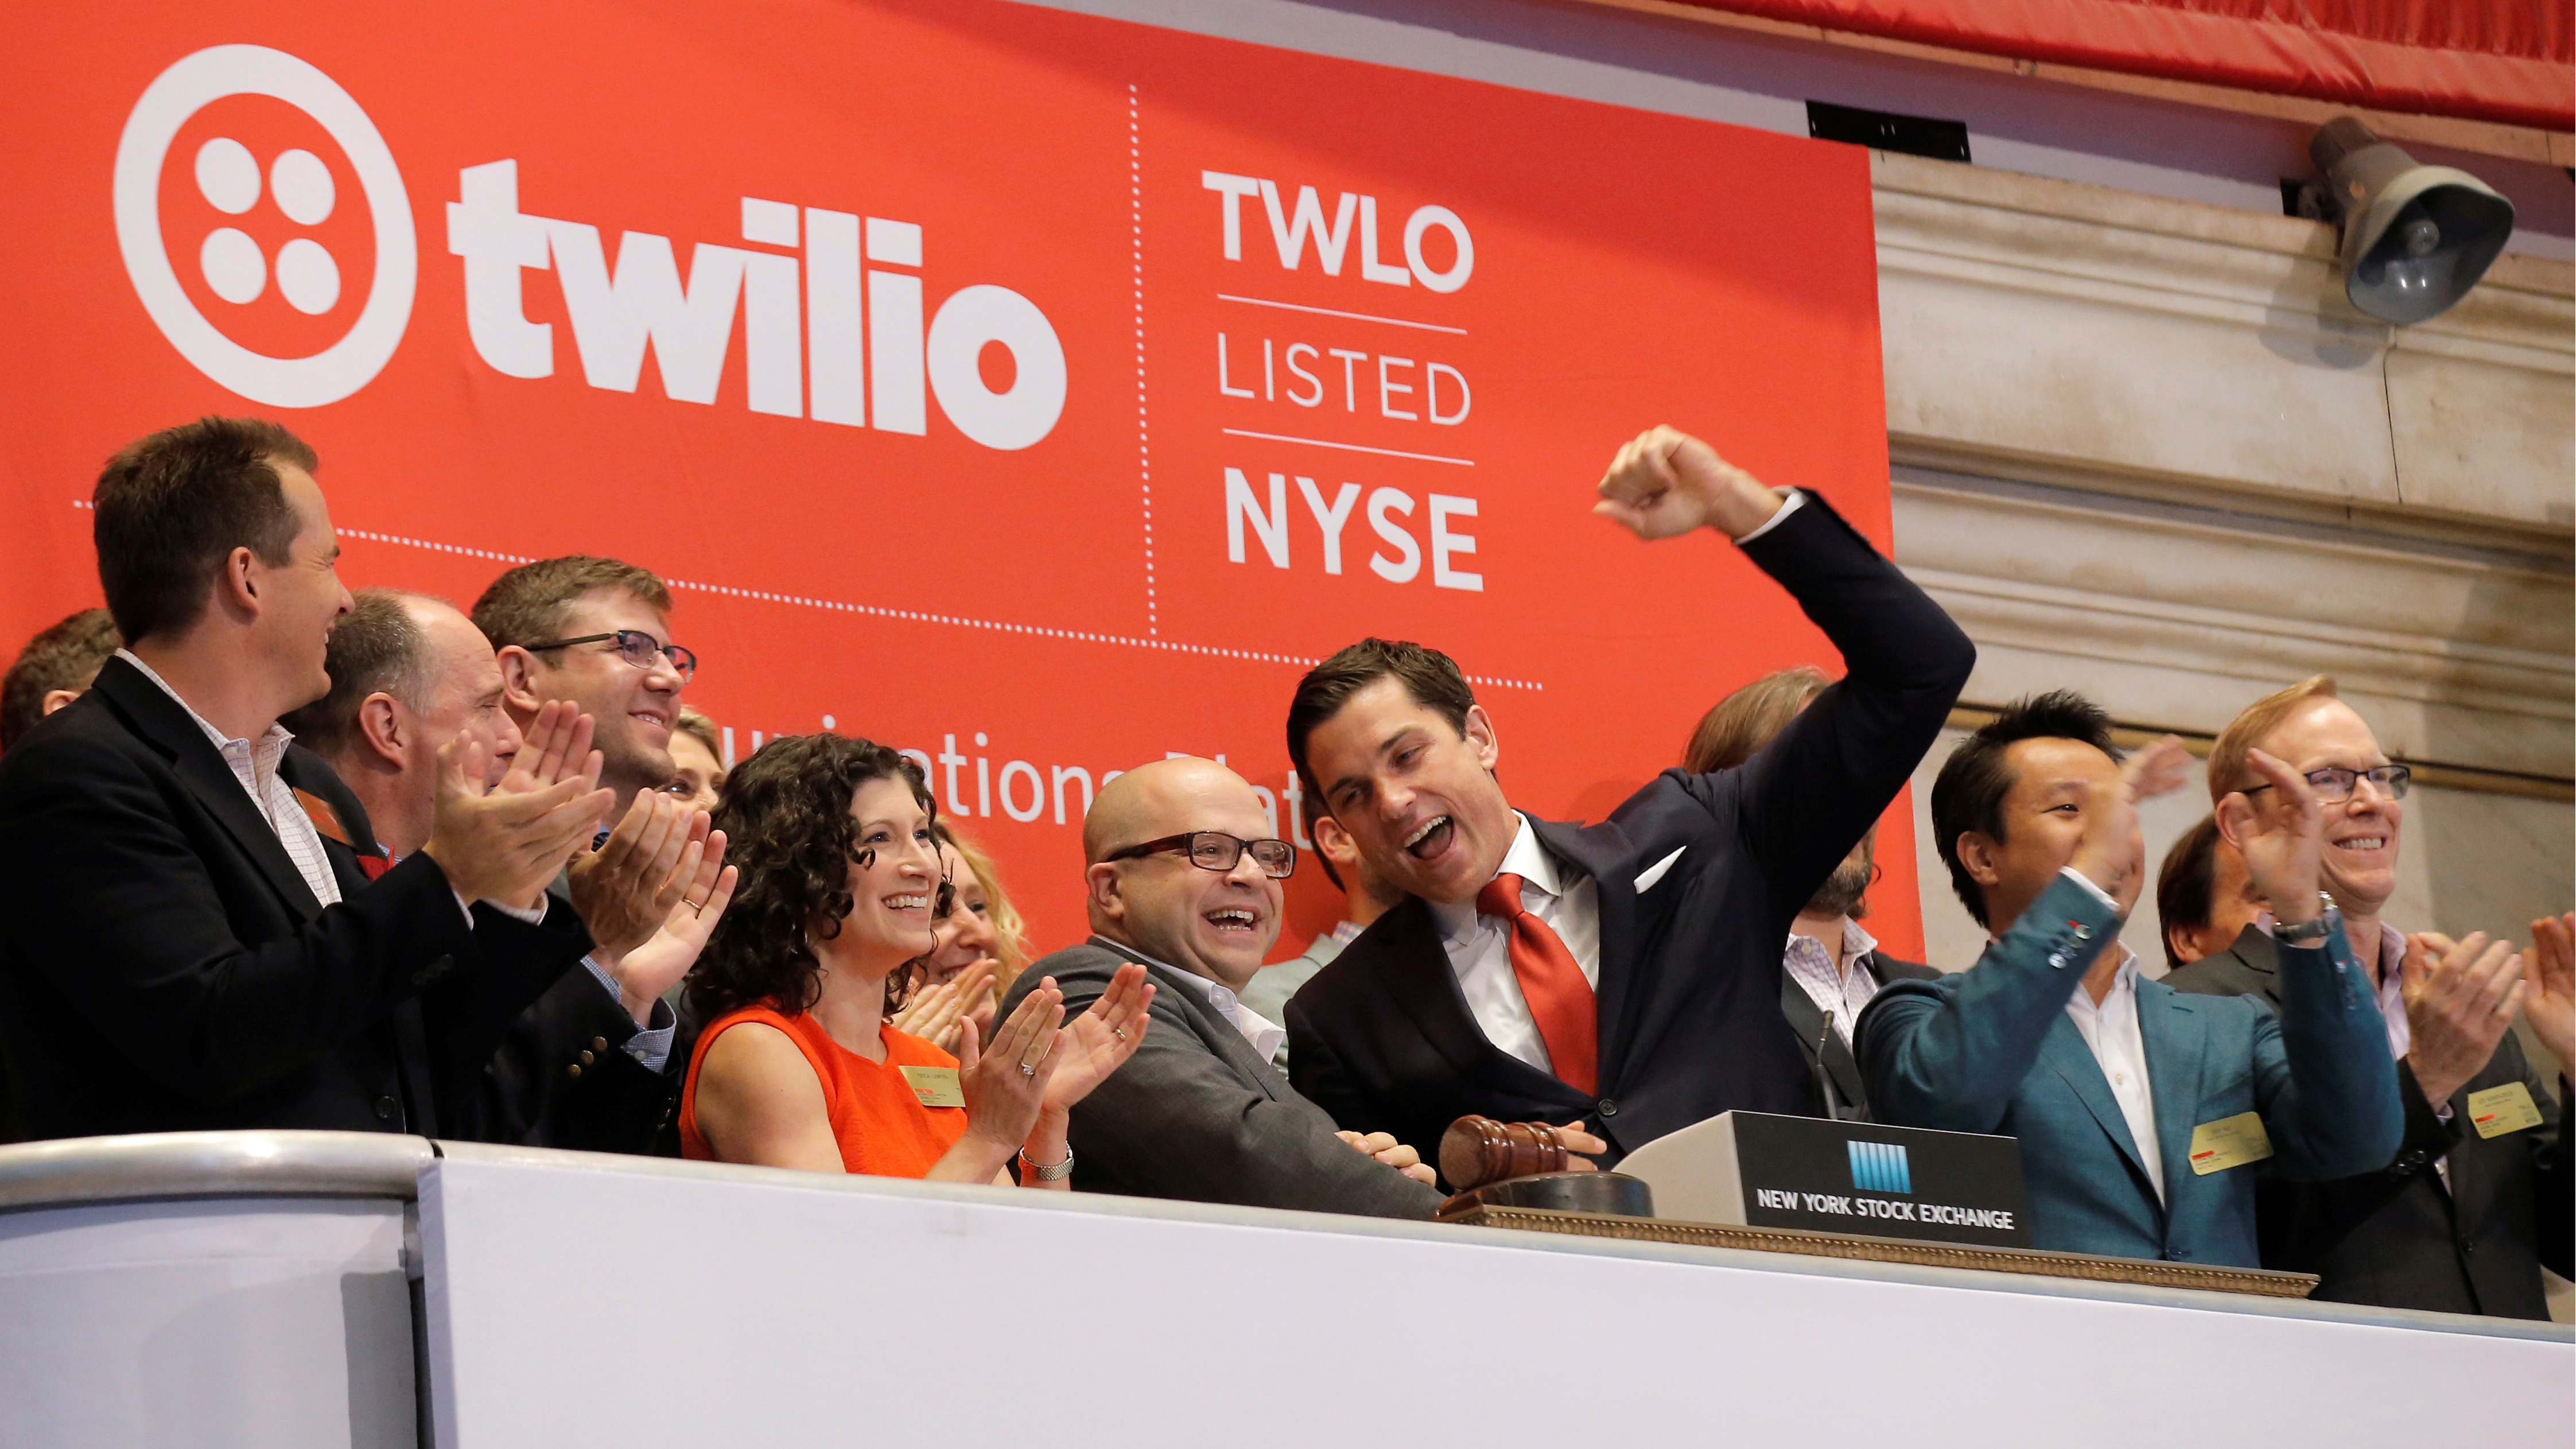 Jeff Lawson, (C) Founder, CEO, & Chairman of Communications software provider Twilio Inc., rings the opening bell to celebrate his company's IPO at the New York Stock Exchange (NYSE) in New York City, U.S., June 23, 2016. REUTERS/Brendan McDermid TPX IMAGES OF THE DAY - RTX2HTCR